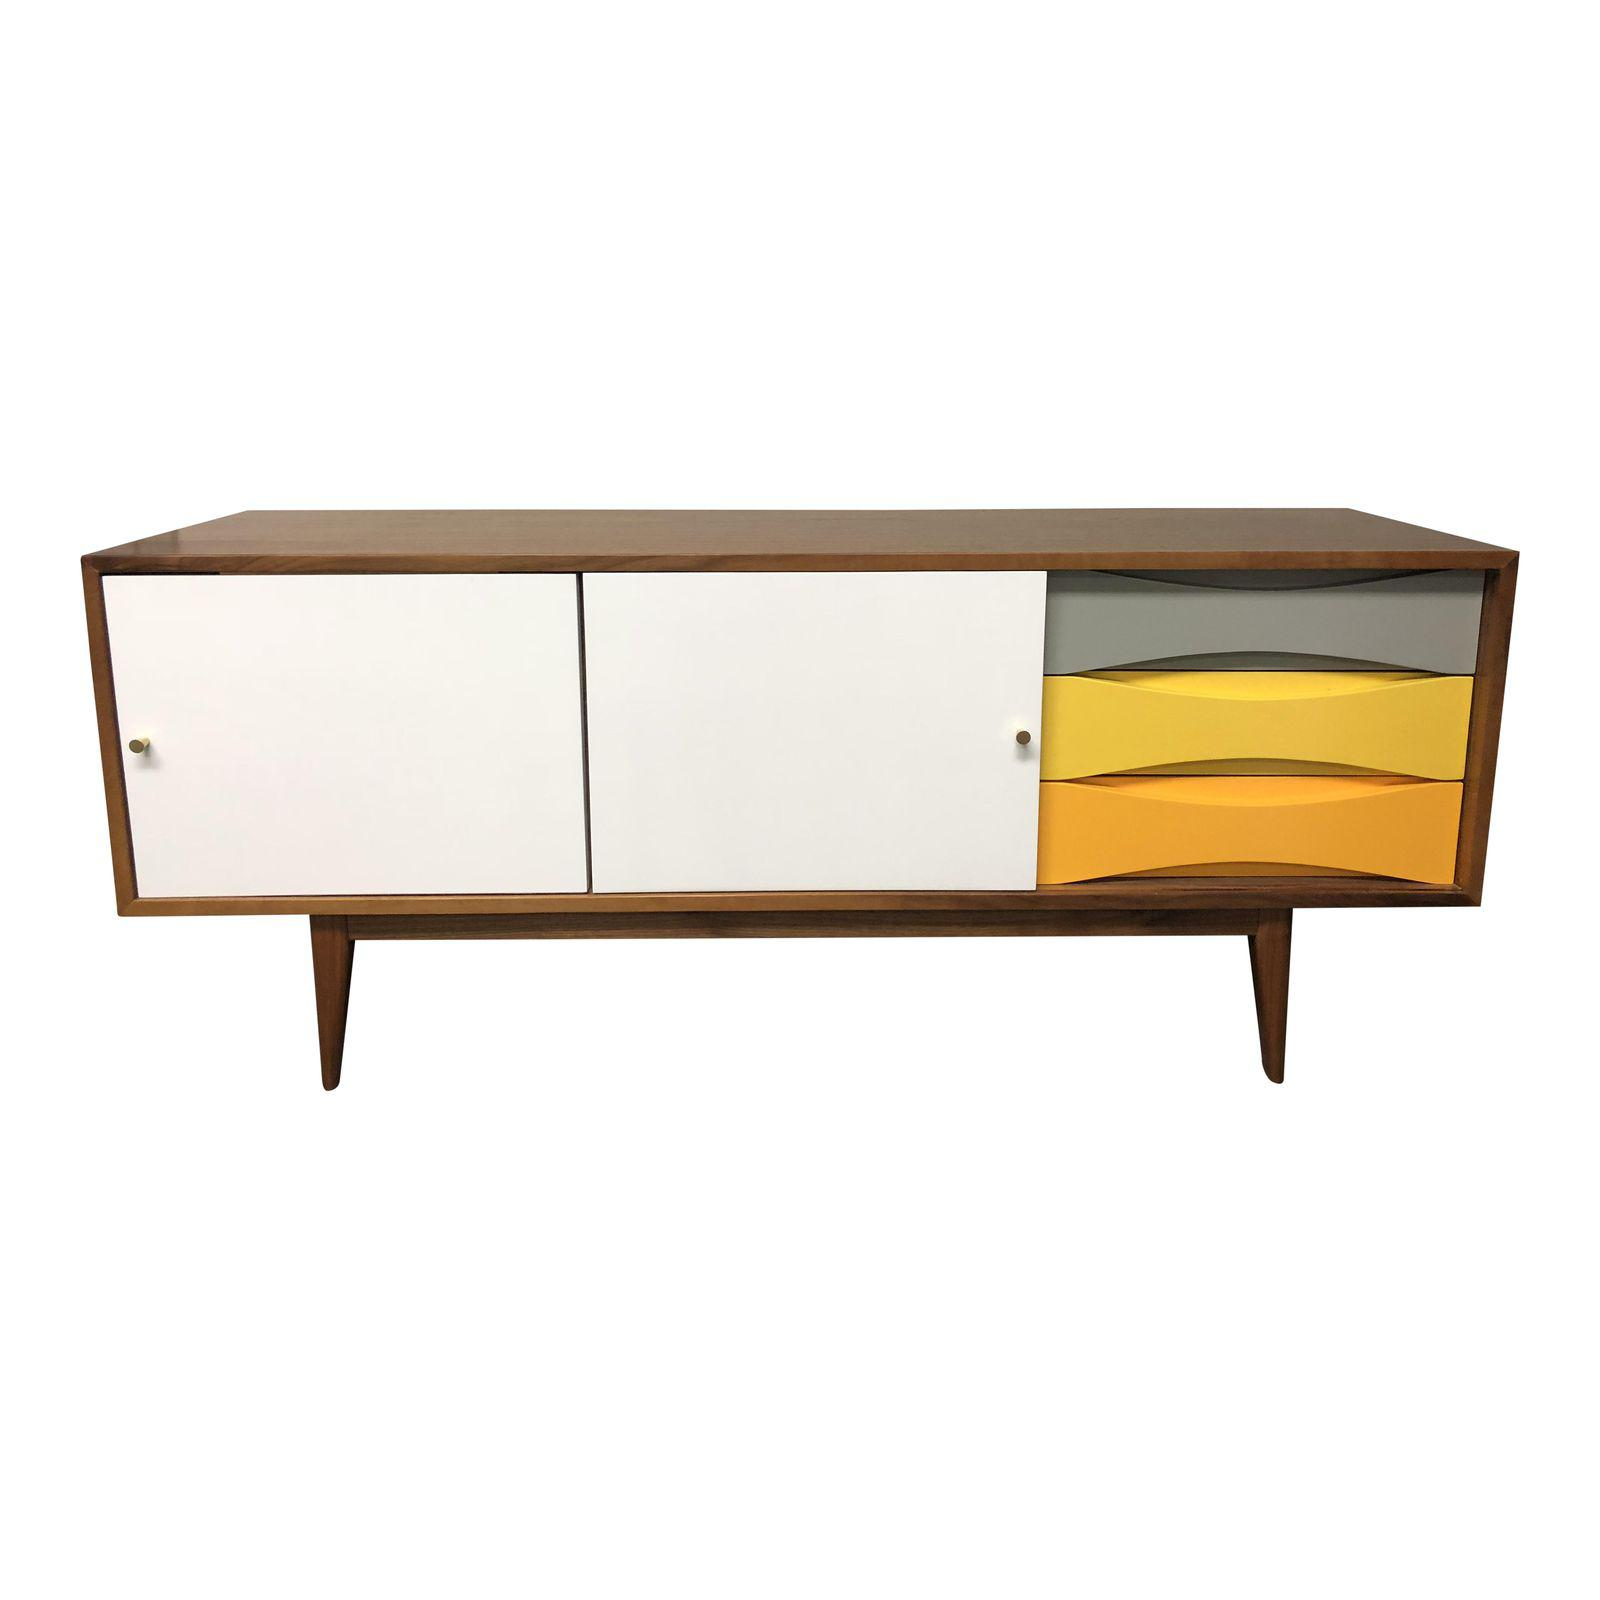 custom made mid century modern style credenza design